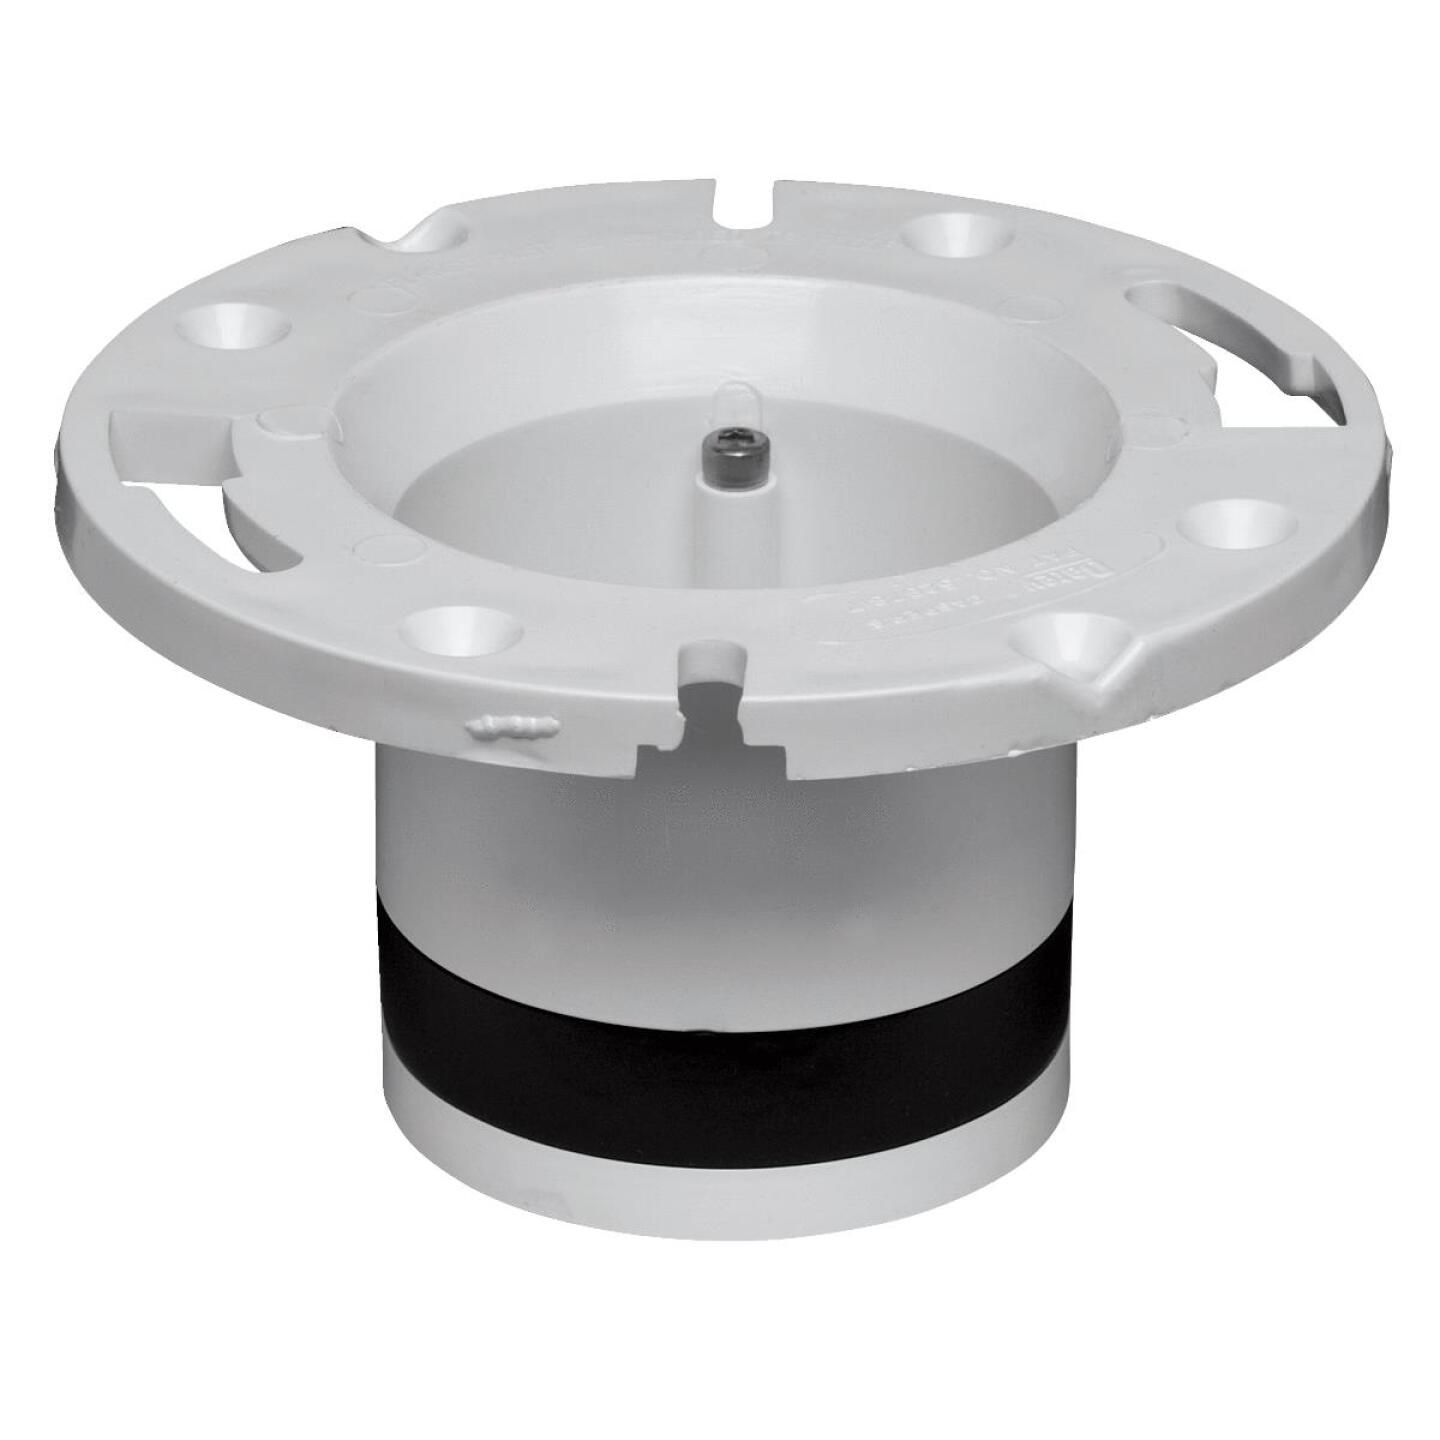 Oatey 4 In. Schedule 40 DWV Replacement PVC Closet Flange Image 1